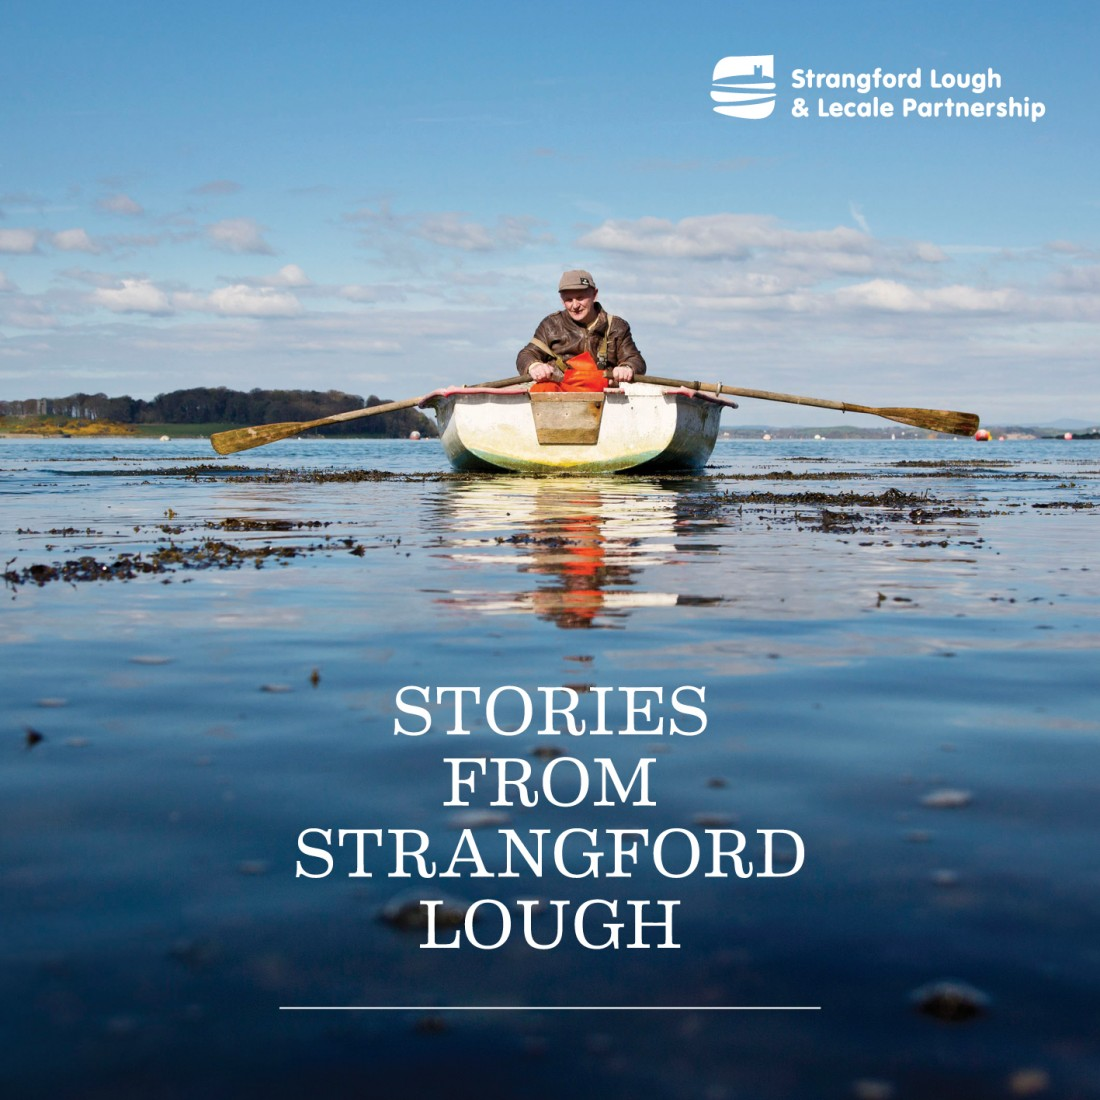 Stories from Strangford Lough